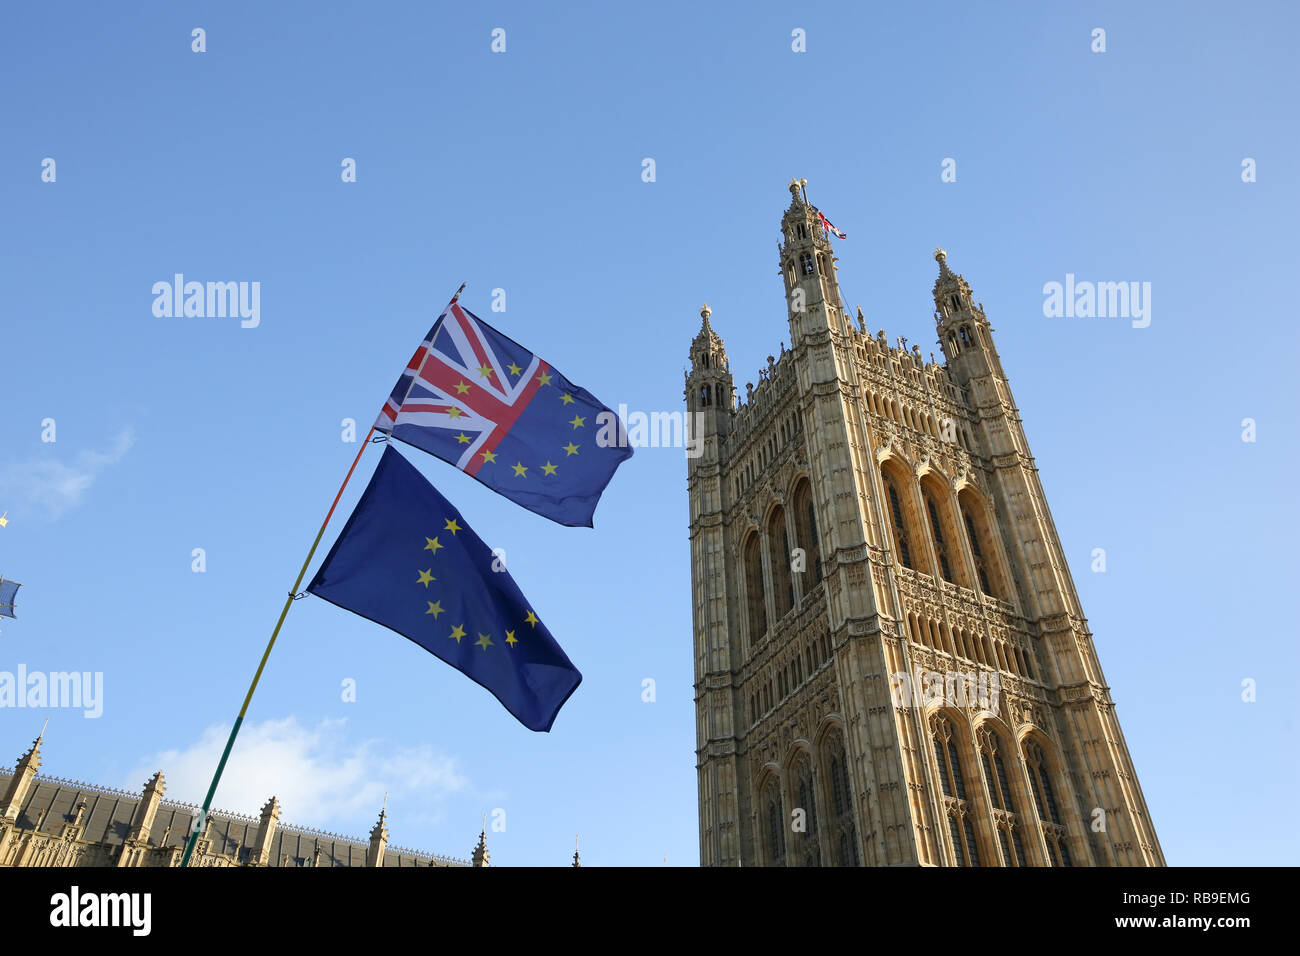 London, UK. 8th Jan, 2019. The European Union flag and the union jack flag are seen hanging together during the protest.Anti Brexit demonstrators gather outside the British Parliament a week before the MPs to vote on the finalized Brexit deal, MPs will vote on Theresa May's Brexit deal on Tuesday, 15 January. Credit: Dinendra Haria/SOPA Images/ZUMA Wire/Alamy Live News - Stock Image